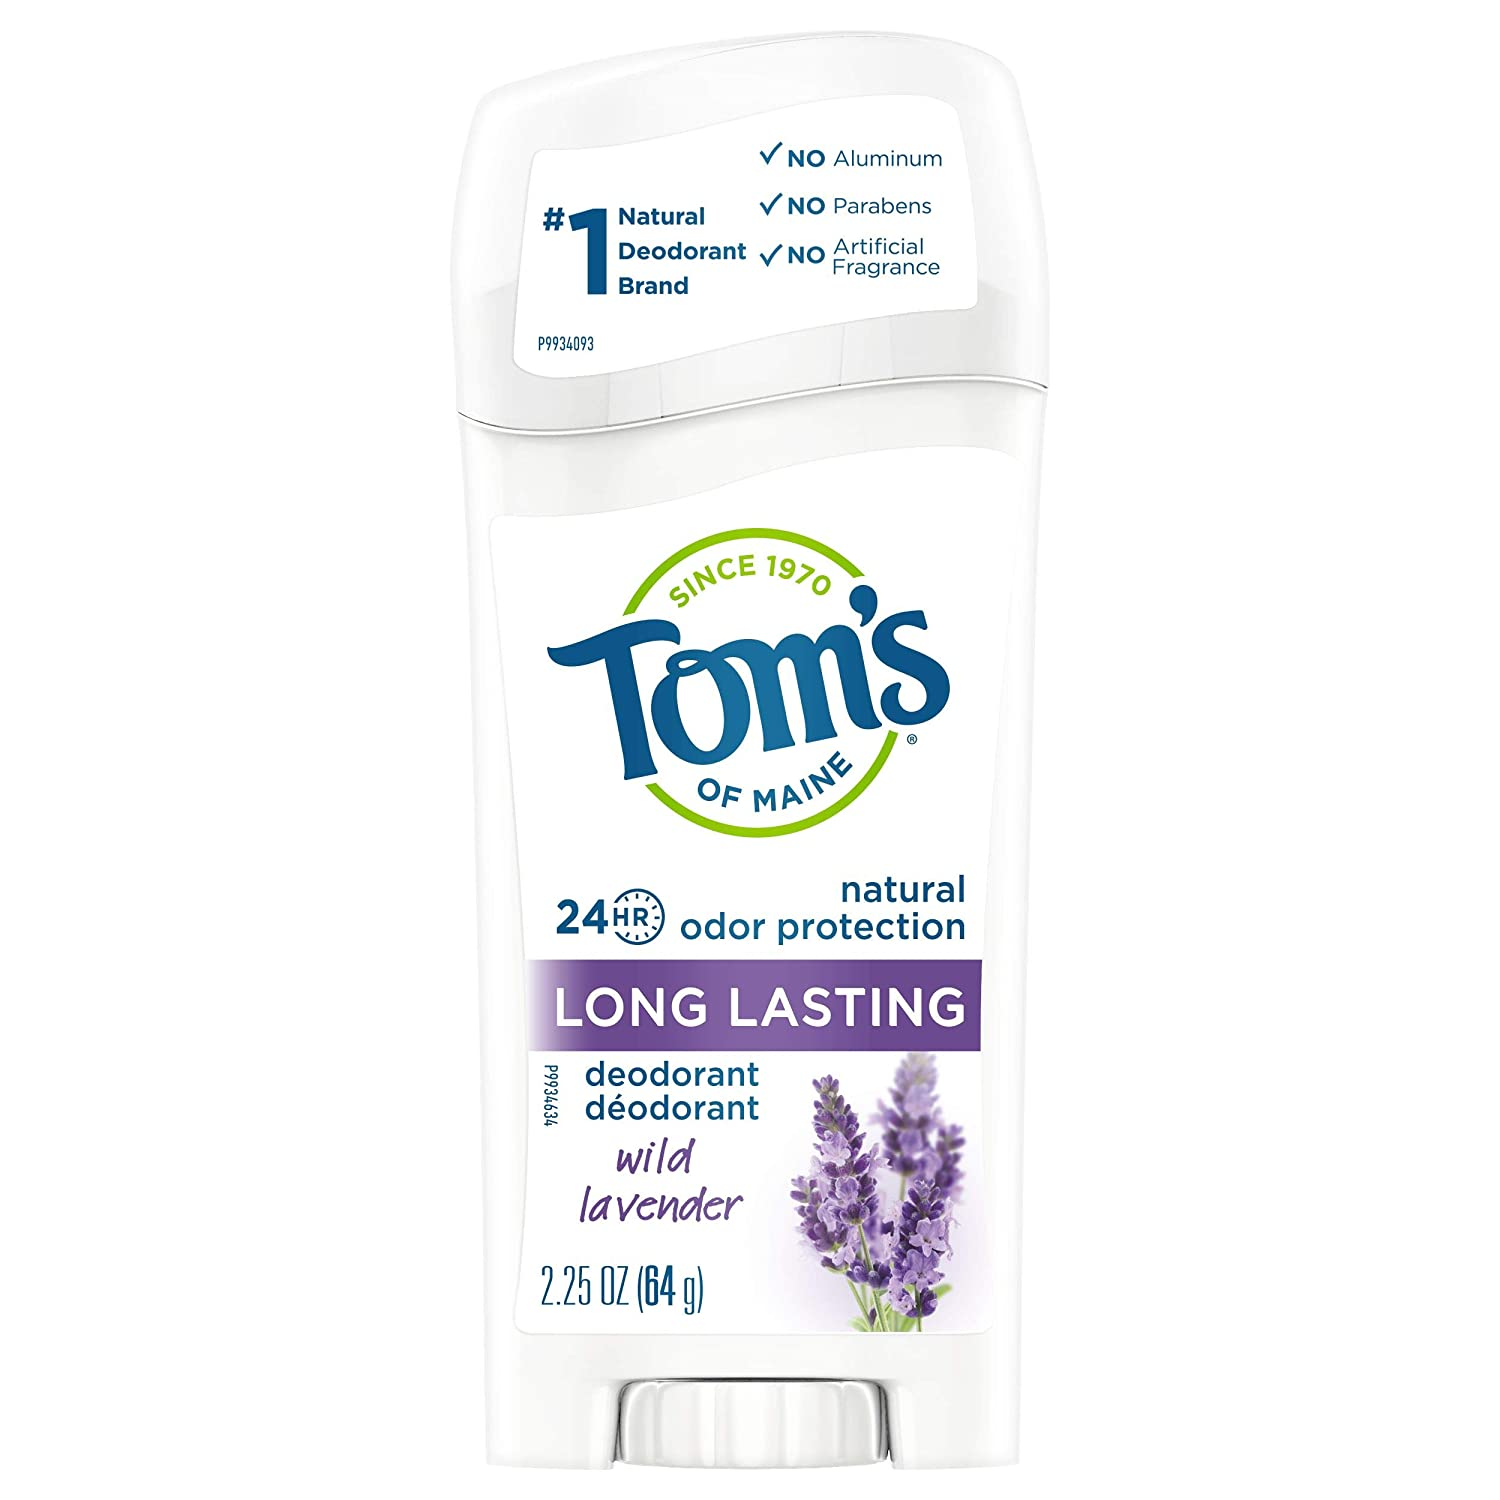 Tom's of Maine Natural Deodorant Stick, Aluminum Free, Long Lasting, Wild Lavender, 2.25 Ounce